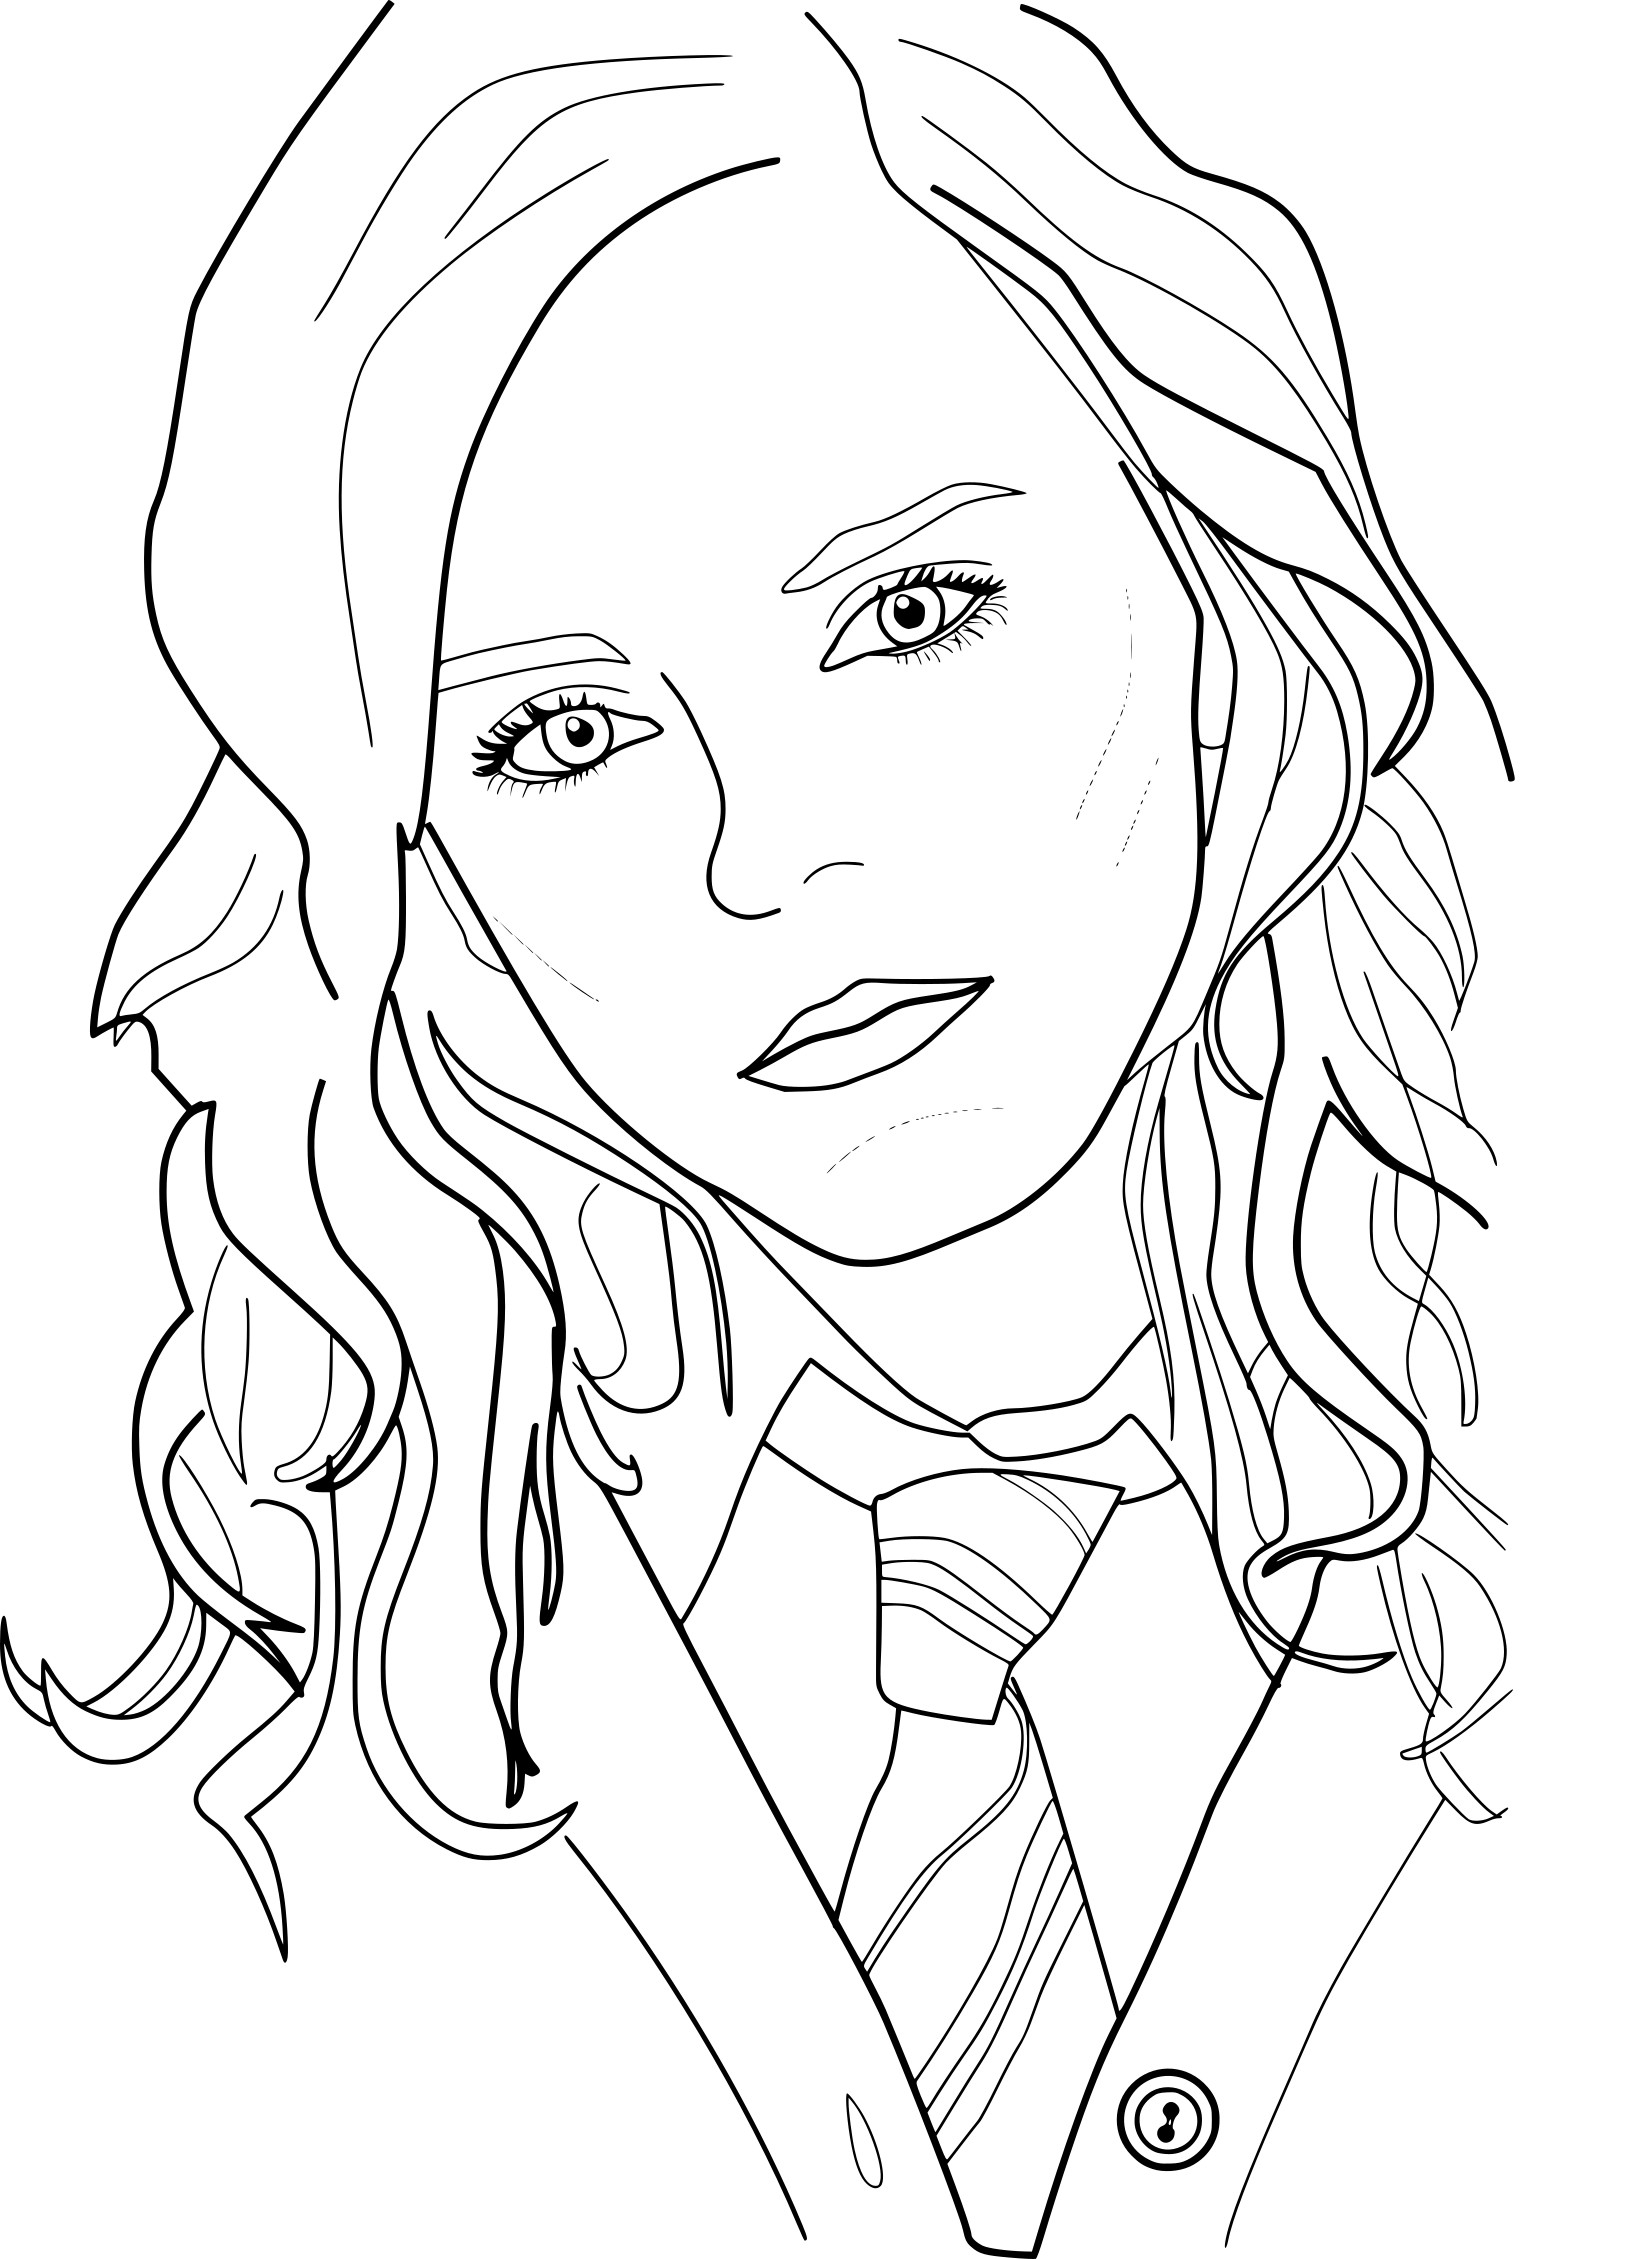 Harry Potter Coloring Pages Harry Potter Coloring Page Coloring Pages For Kids